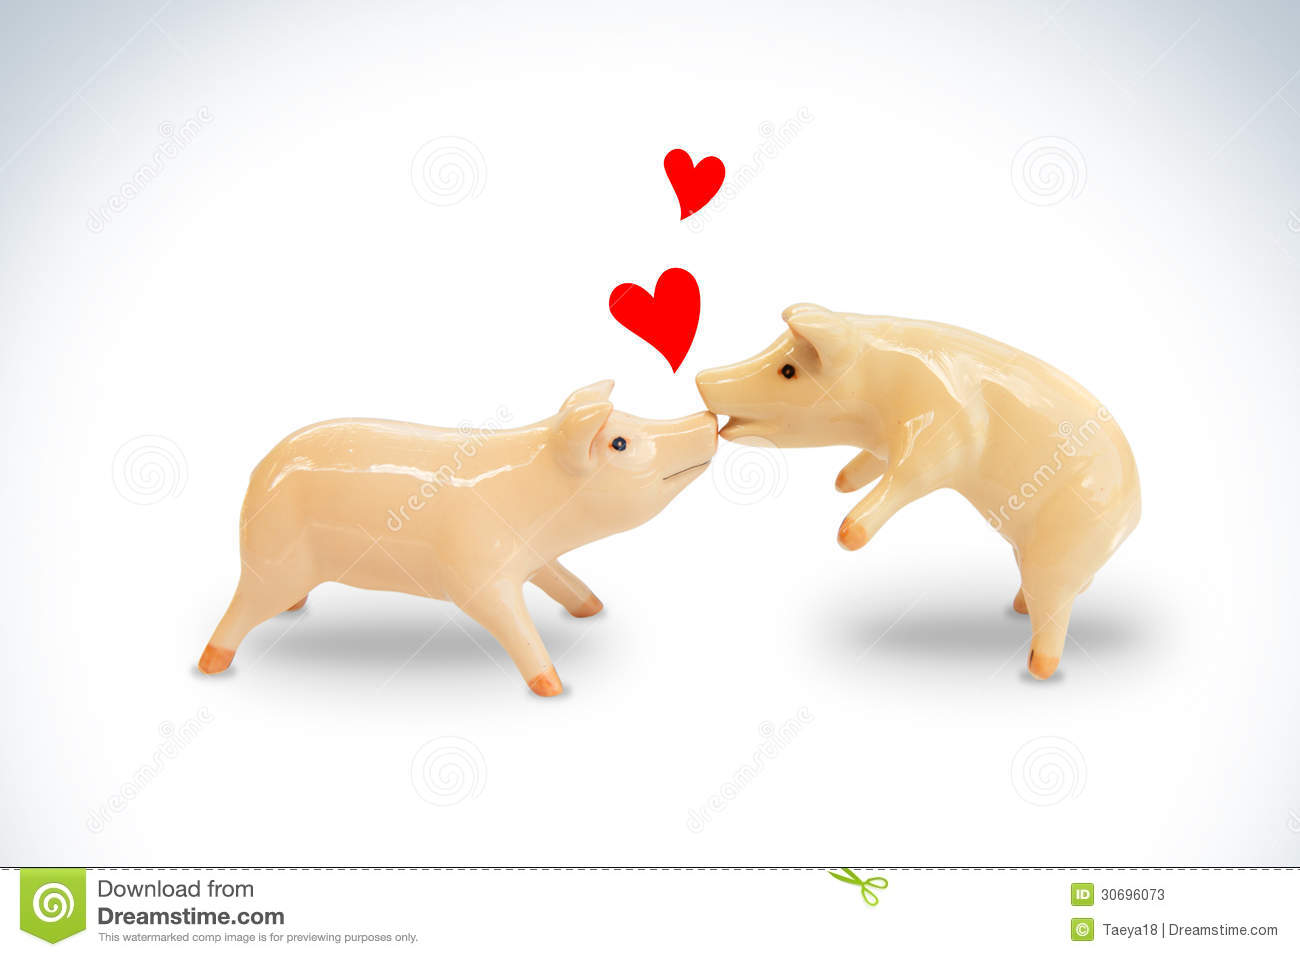 pig lovers and pig haters anp 320 9-26-2013 pig lovers and pig haters this article relates to what we have learned about materialism harris goes in depth explaining the differences between.